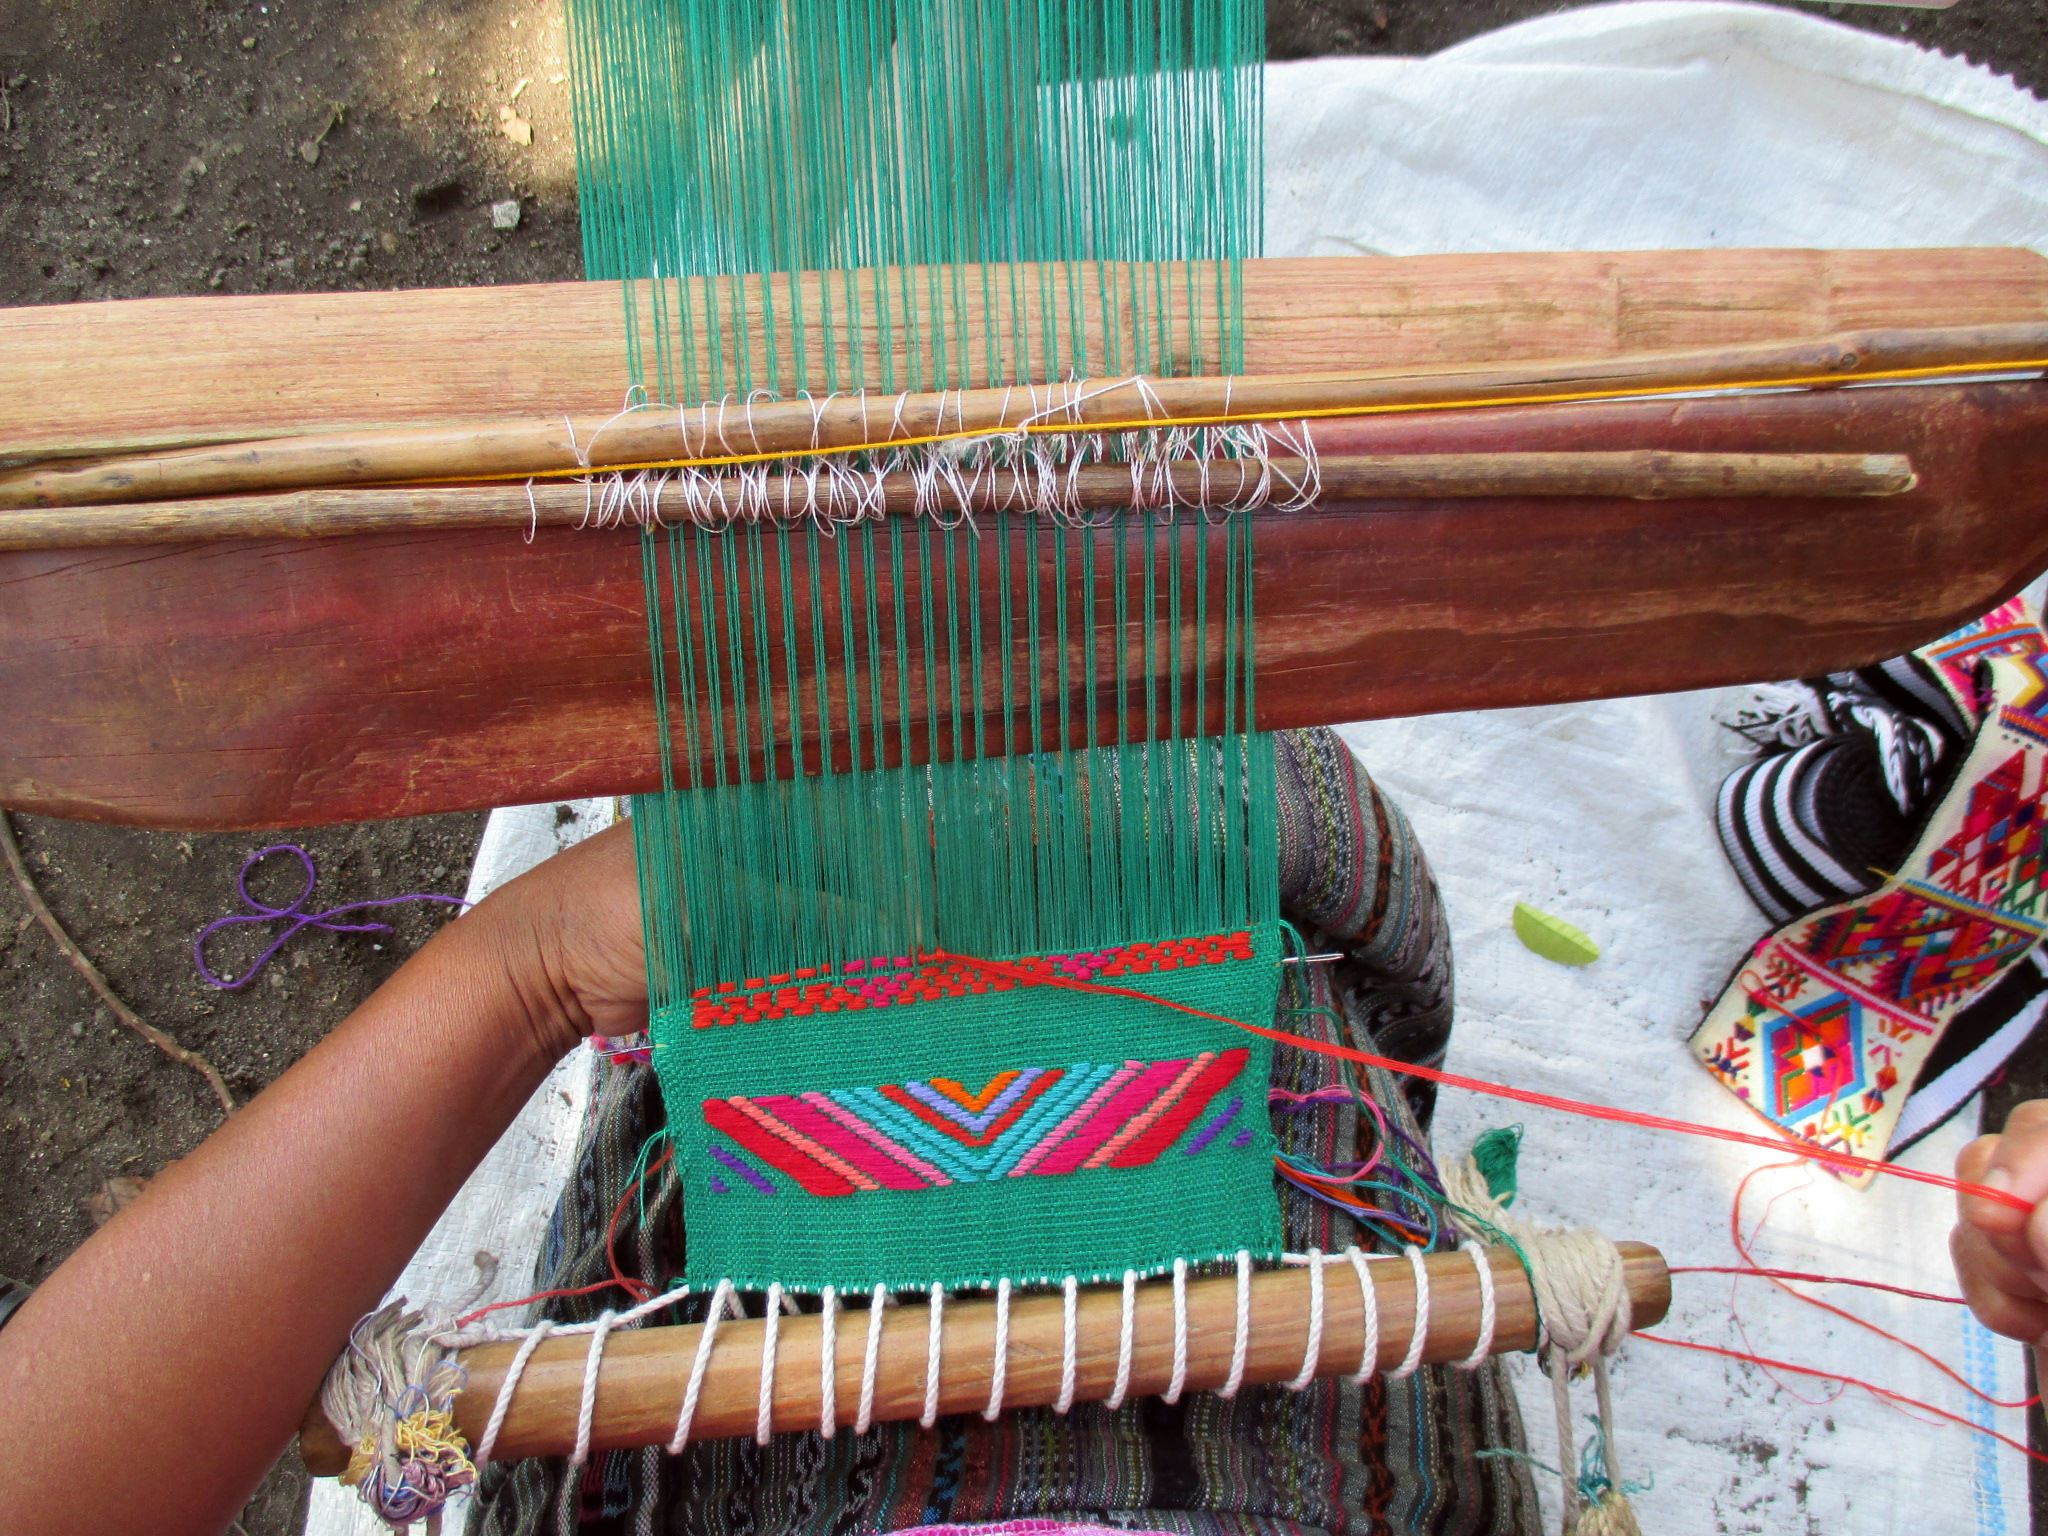 Mayan Hands weaving